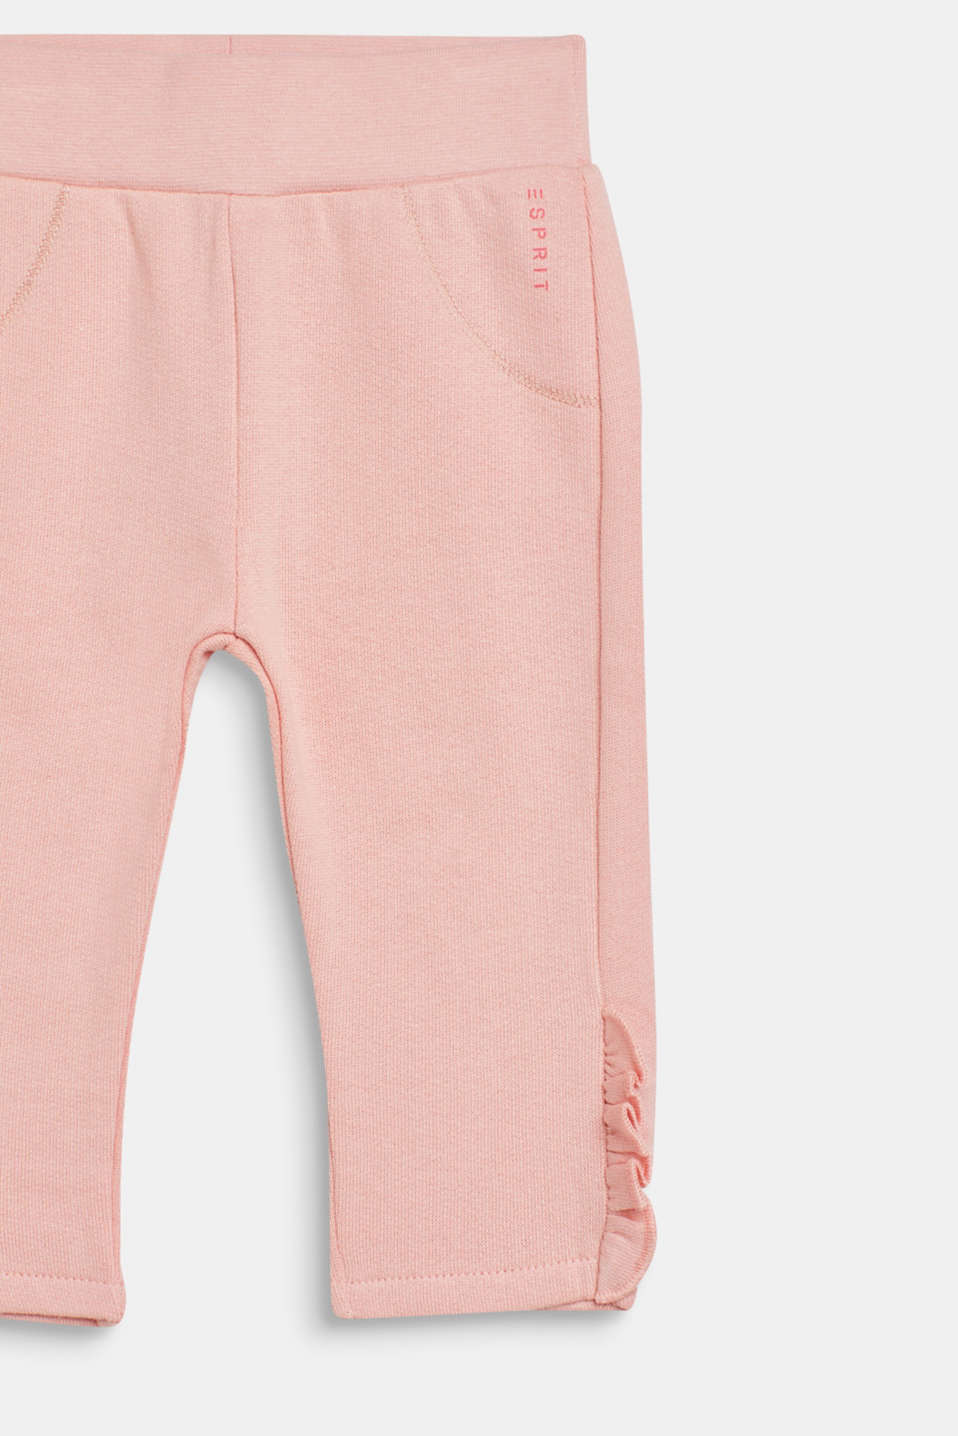 Pants knitted, LCLIGHT BLUSH, detail image number 2